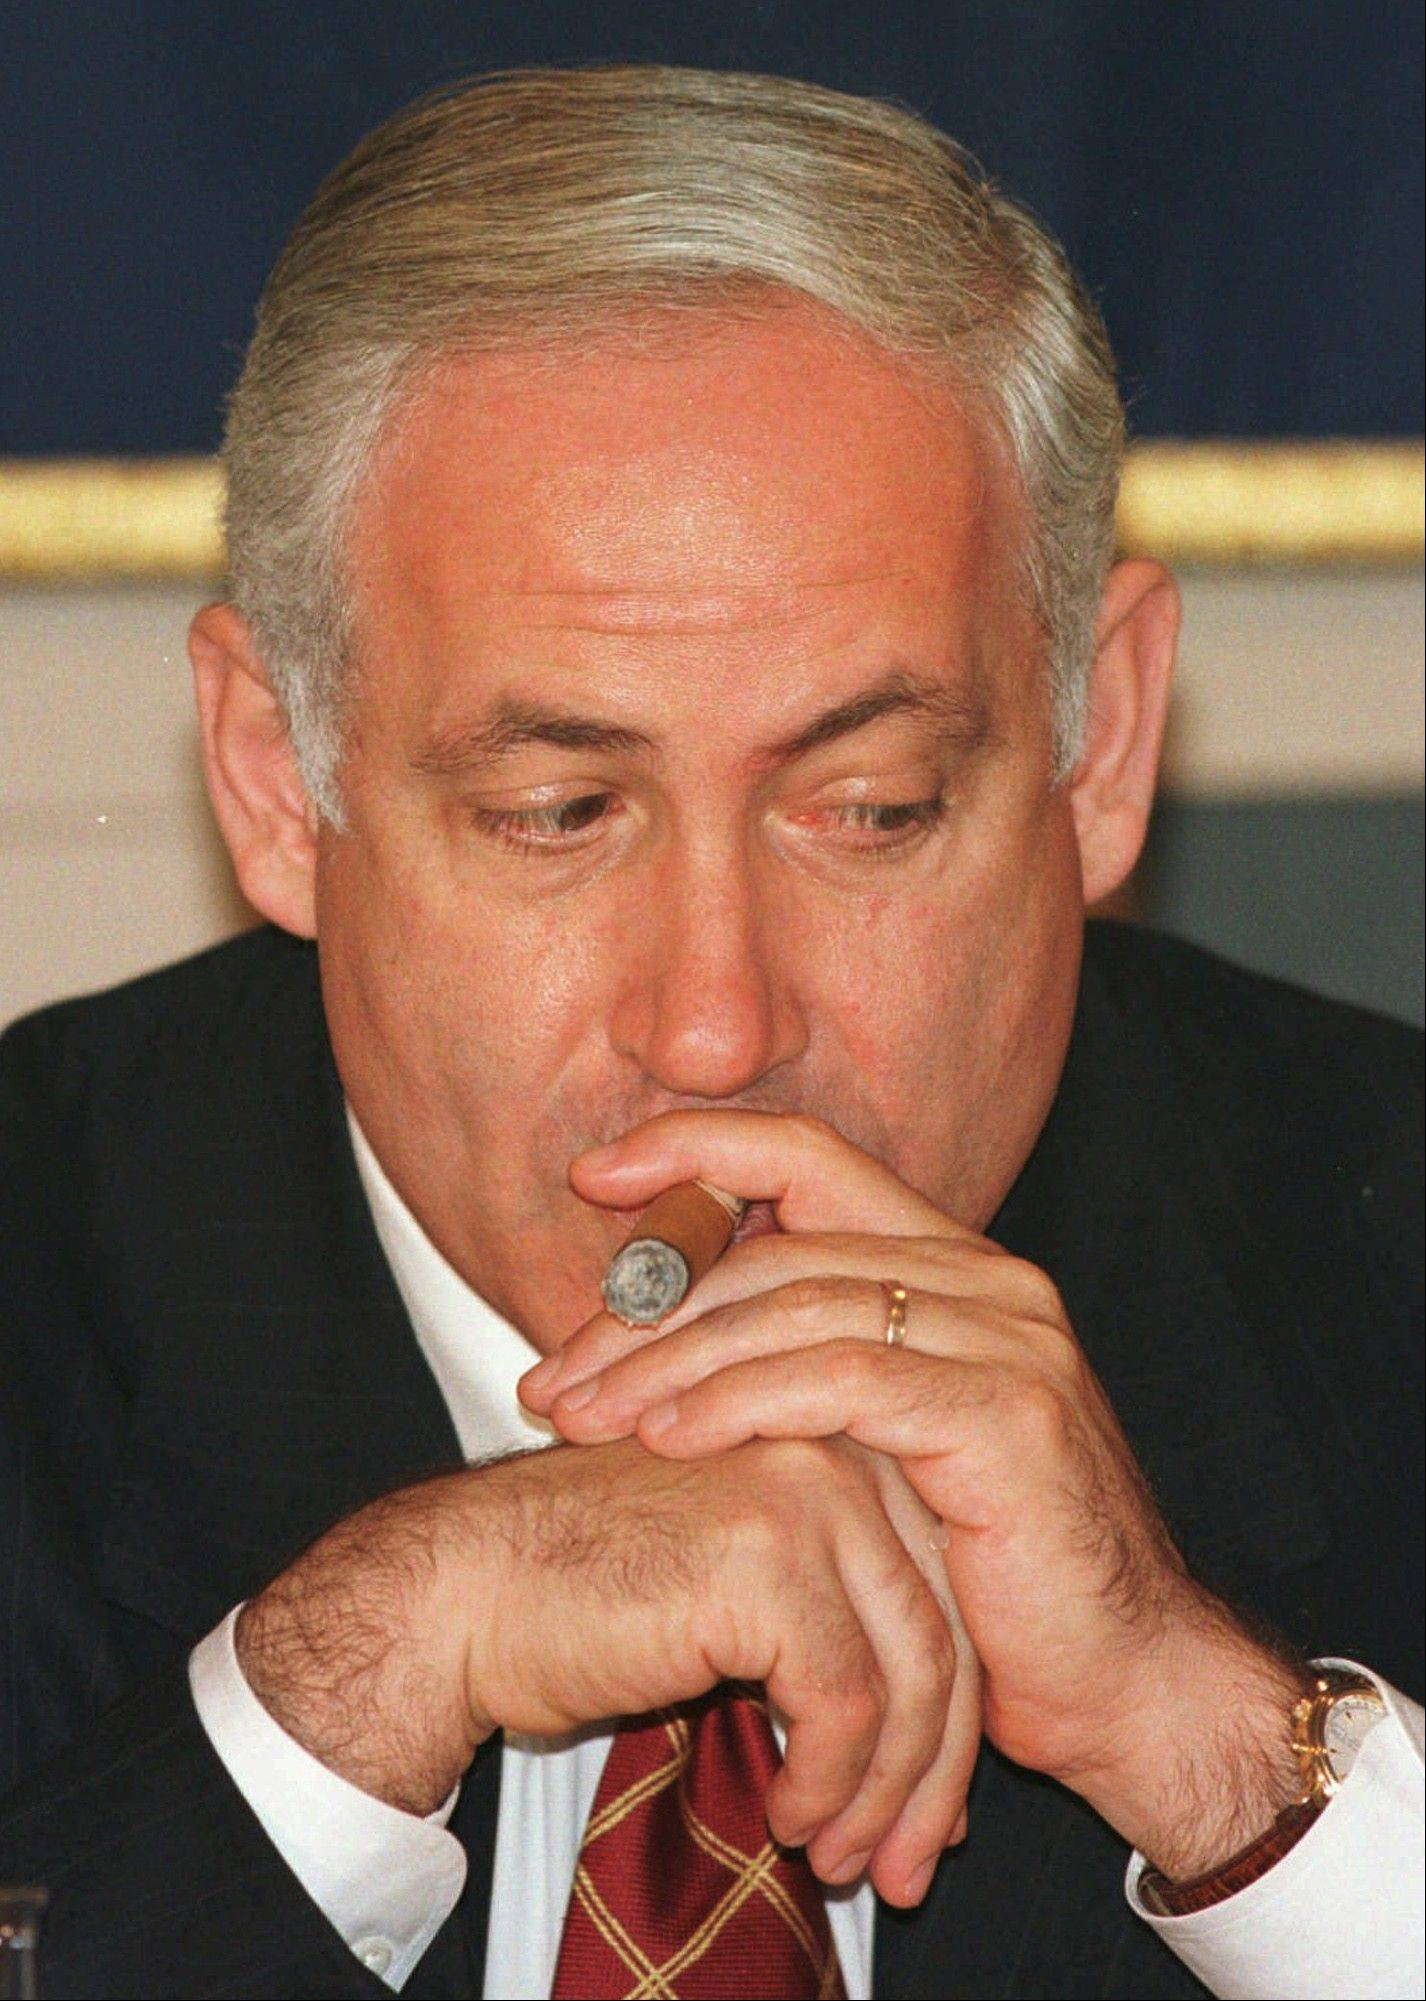 As his government is slashing welfare benefits and hiking takes for the working class to overcome a huge deficit, Israeli Prime Minister Benjamin Netanyahu is finding himself under fire again for his lavish lifestyle.